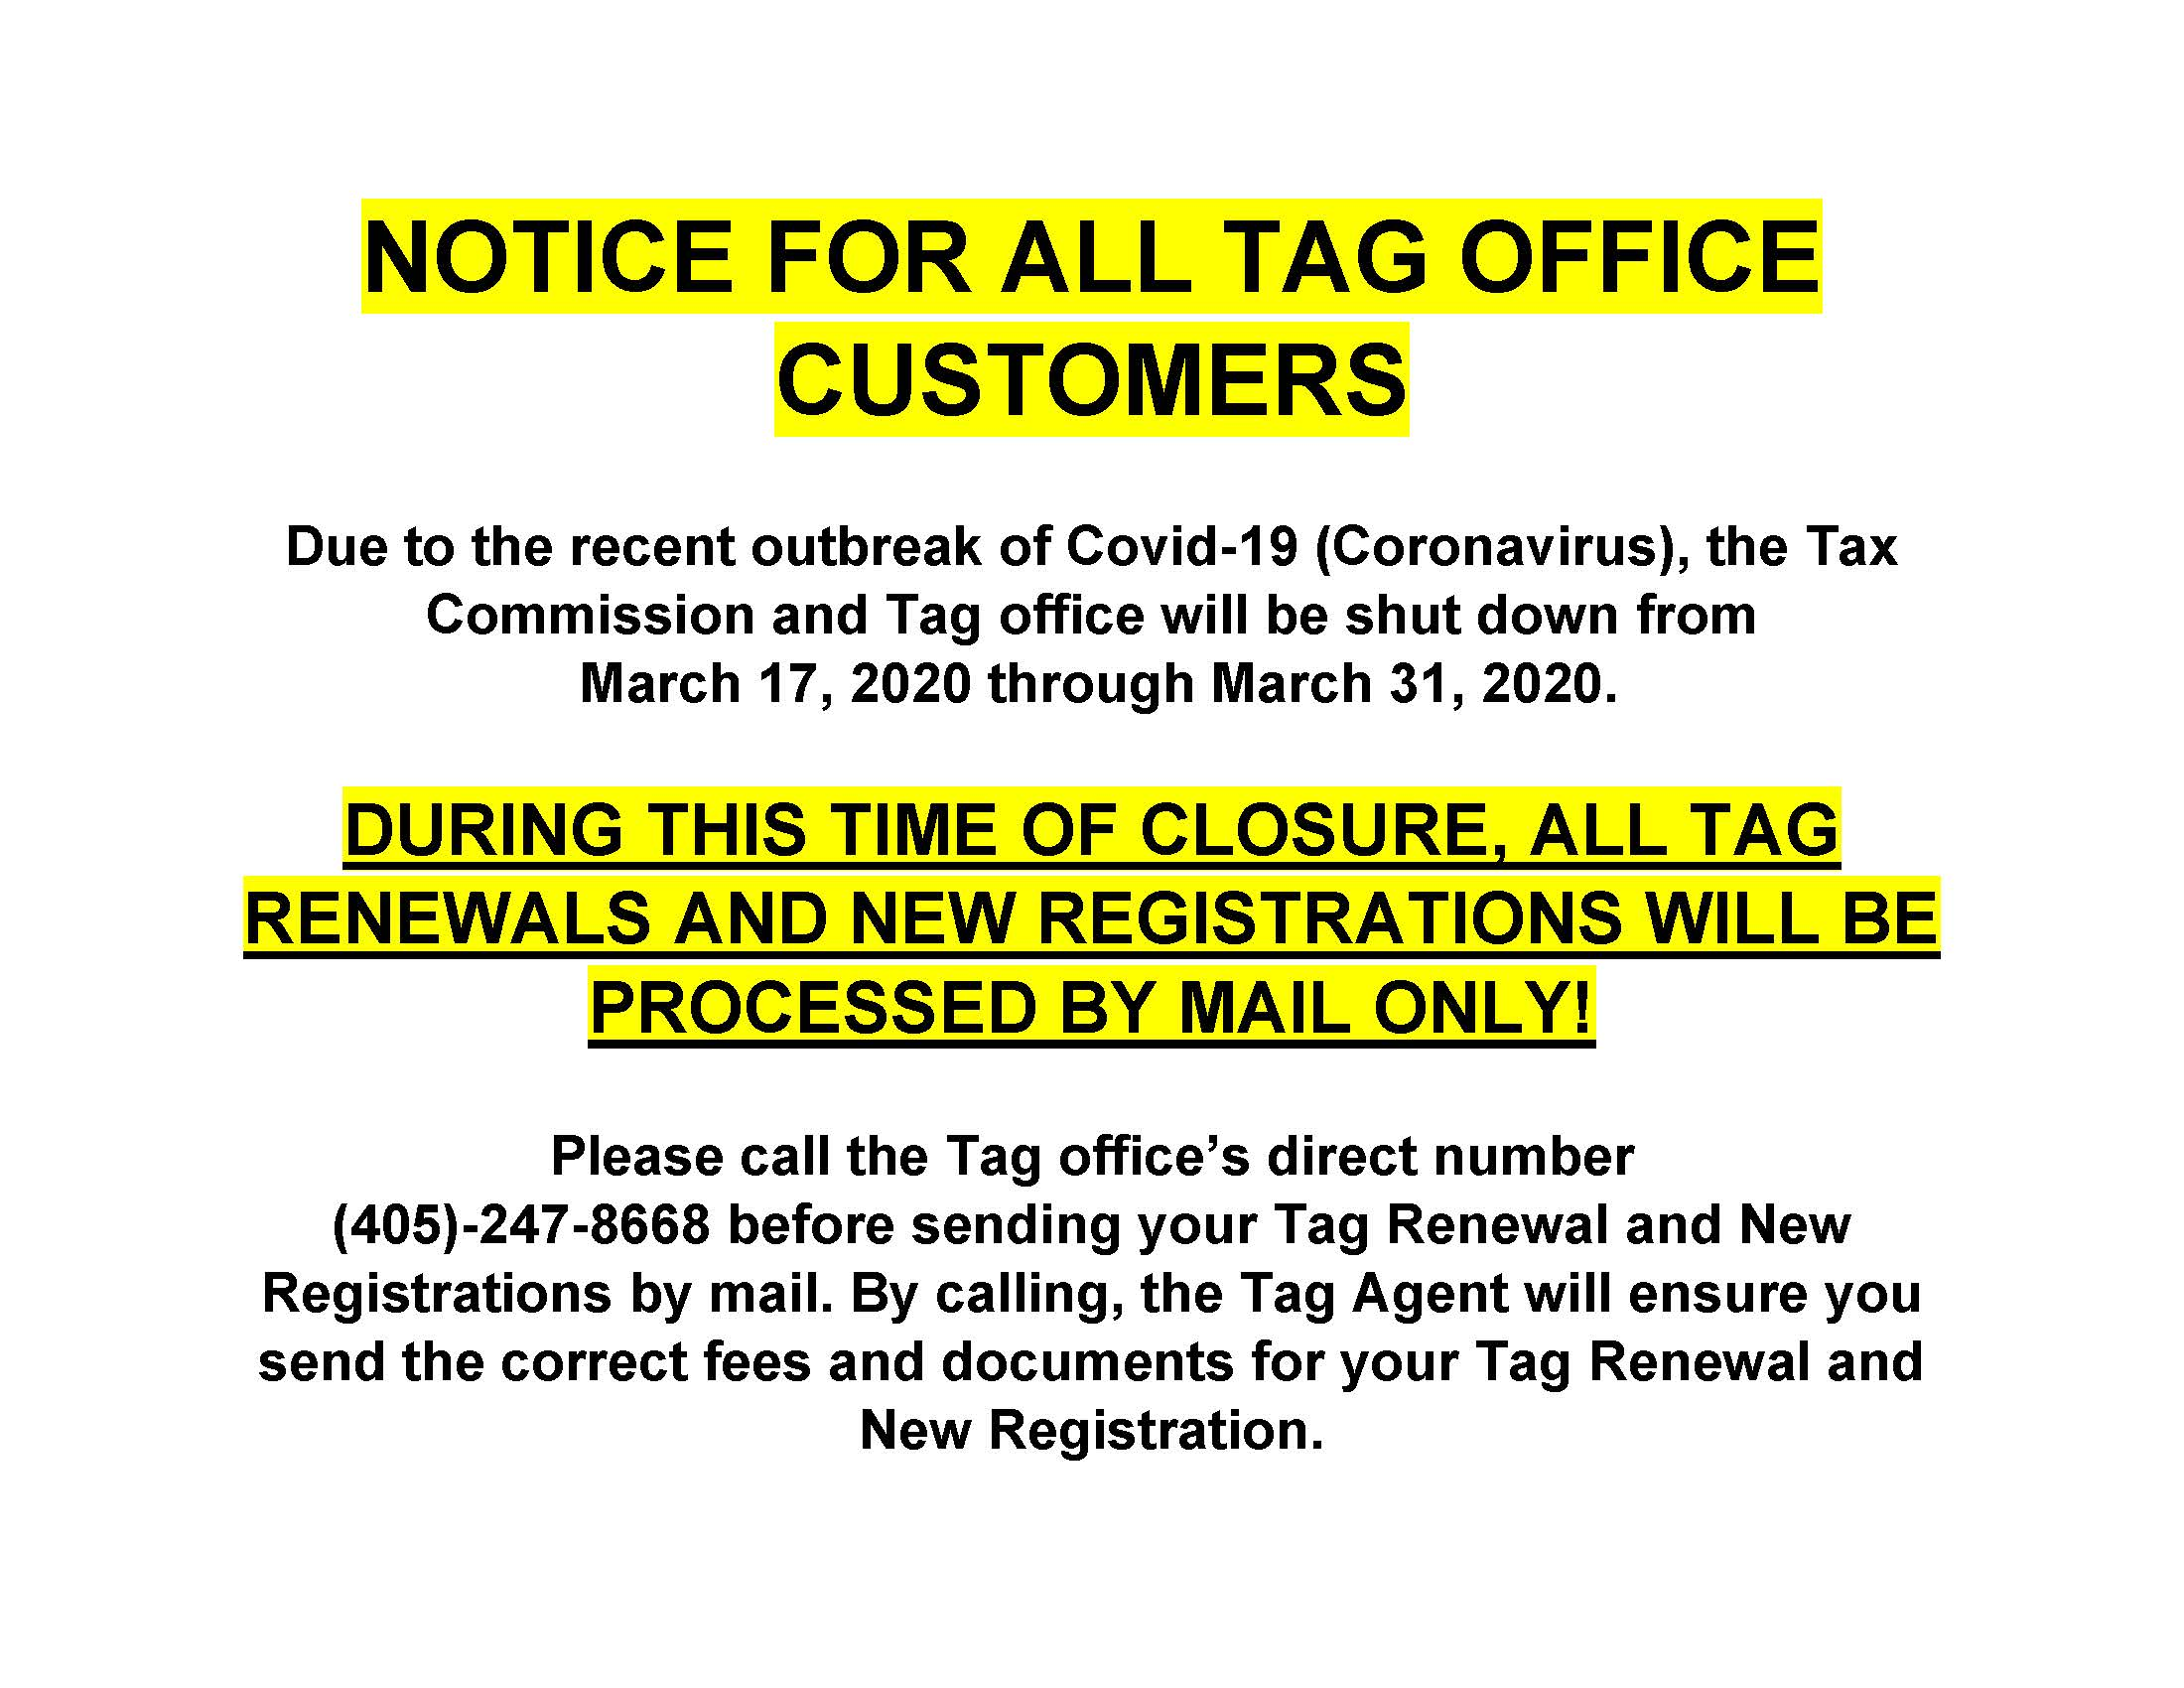 Tag Office Closing